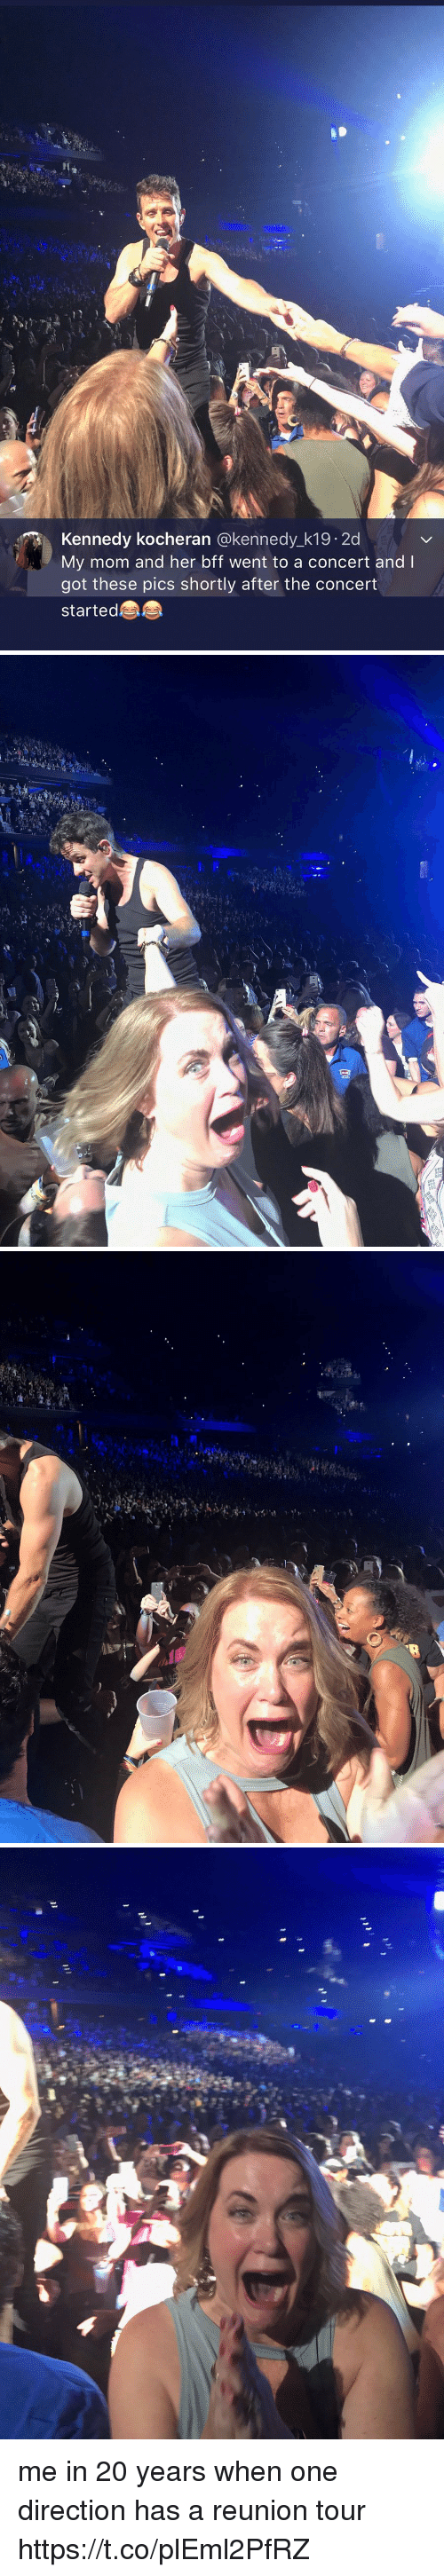 One Direction, Girl Memes, and Mom: Kennedy kocheran @kennedy_k19. 20d  My mom and her bff went to a concert and I  got these pics shortly after the concert  started me in 20 years when one direction has a reunion tour https://t.co/plEml2PfRZ